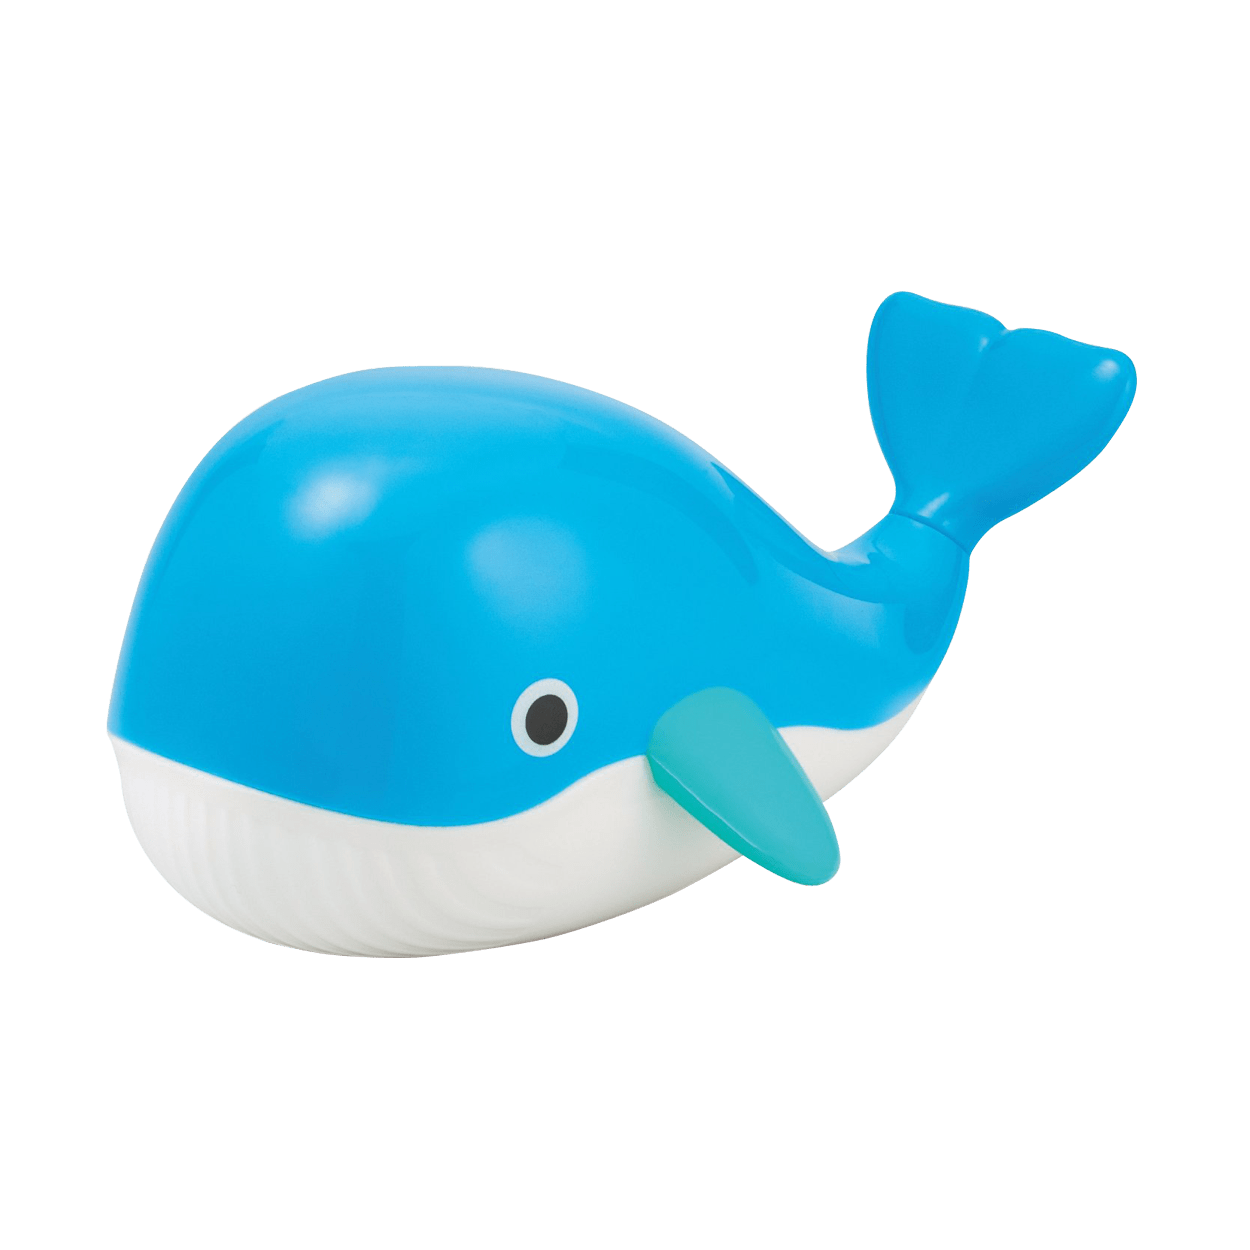 Bath toy transparent png. Clipart whale turquoise